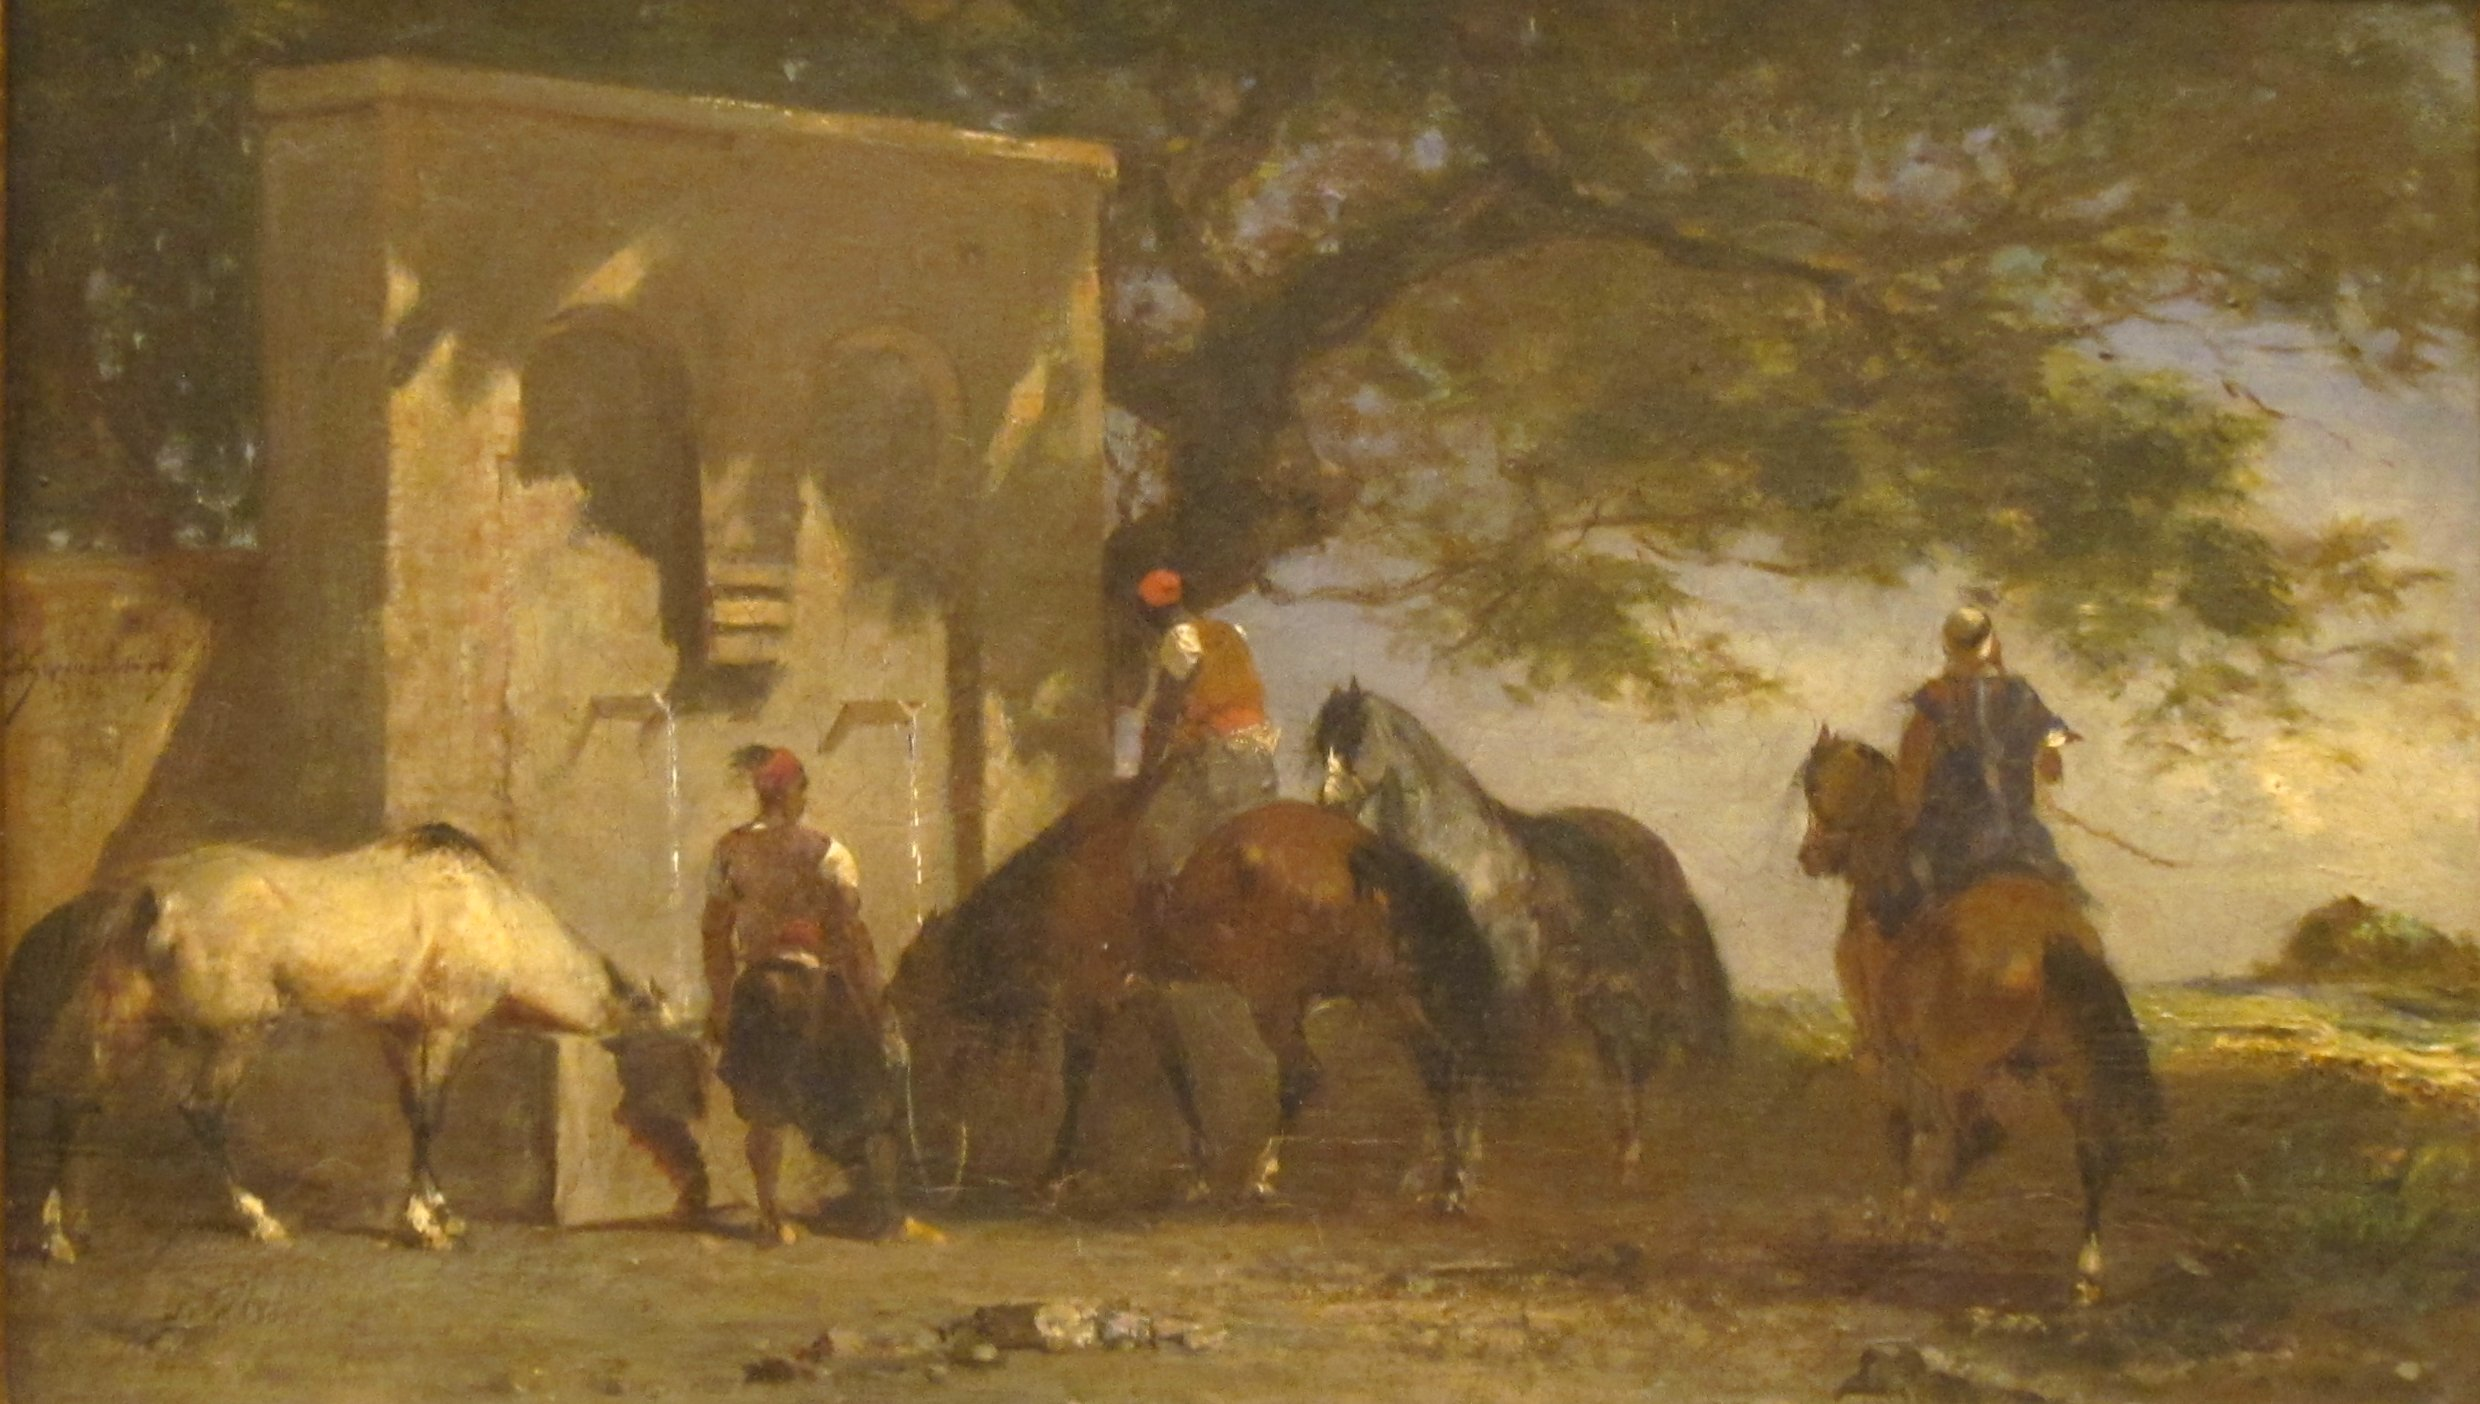 Arabs Watering their Horses, oil on canvas painting by Eugène Fromentin, c. 1850 (?), San Diego Museum of Art / From Wikimedia Commons